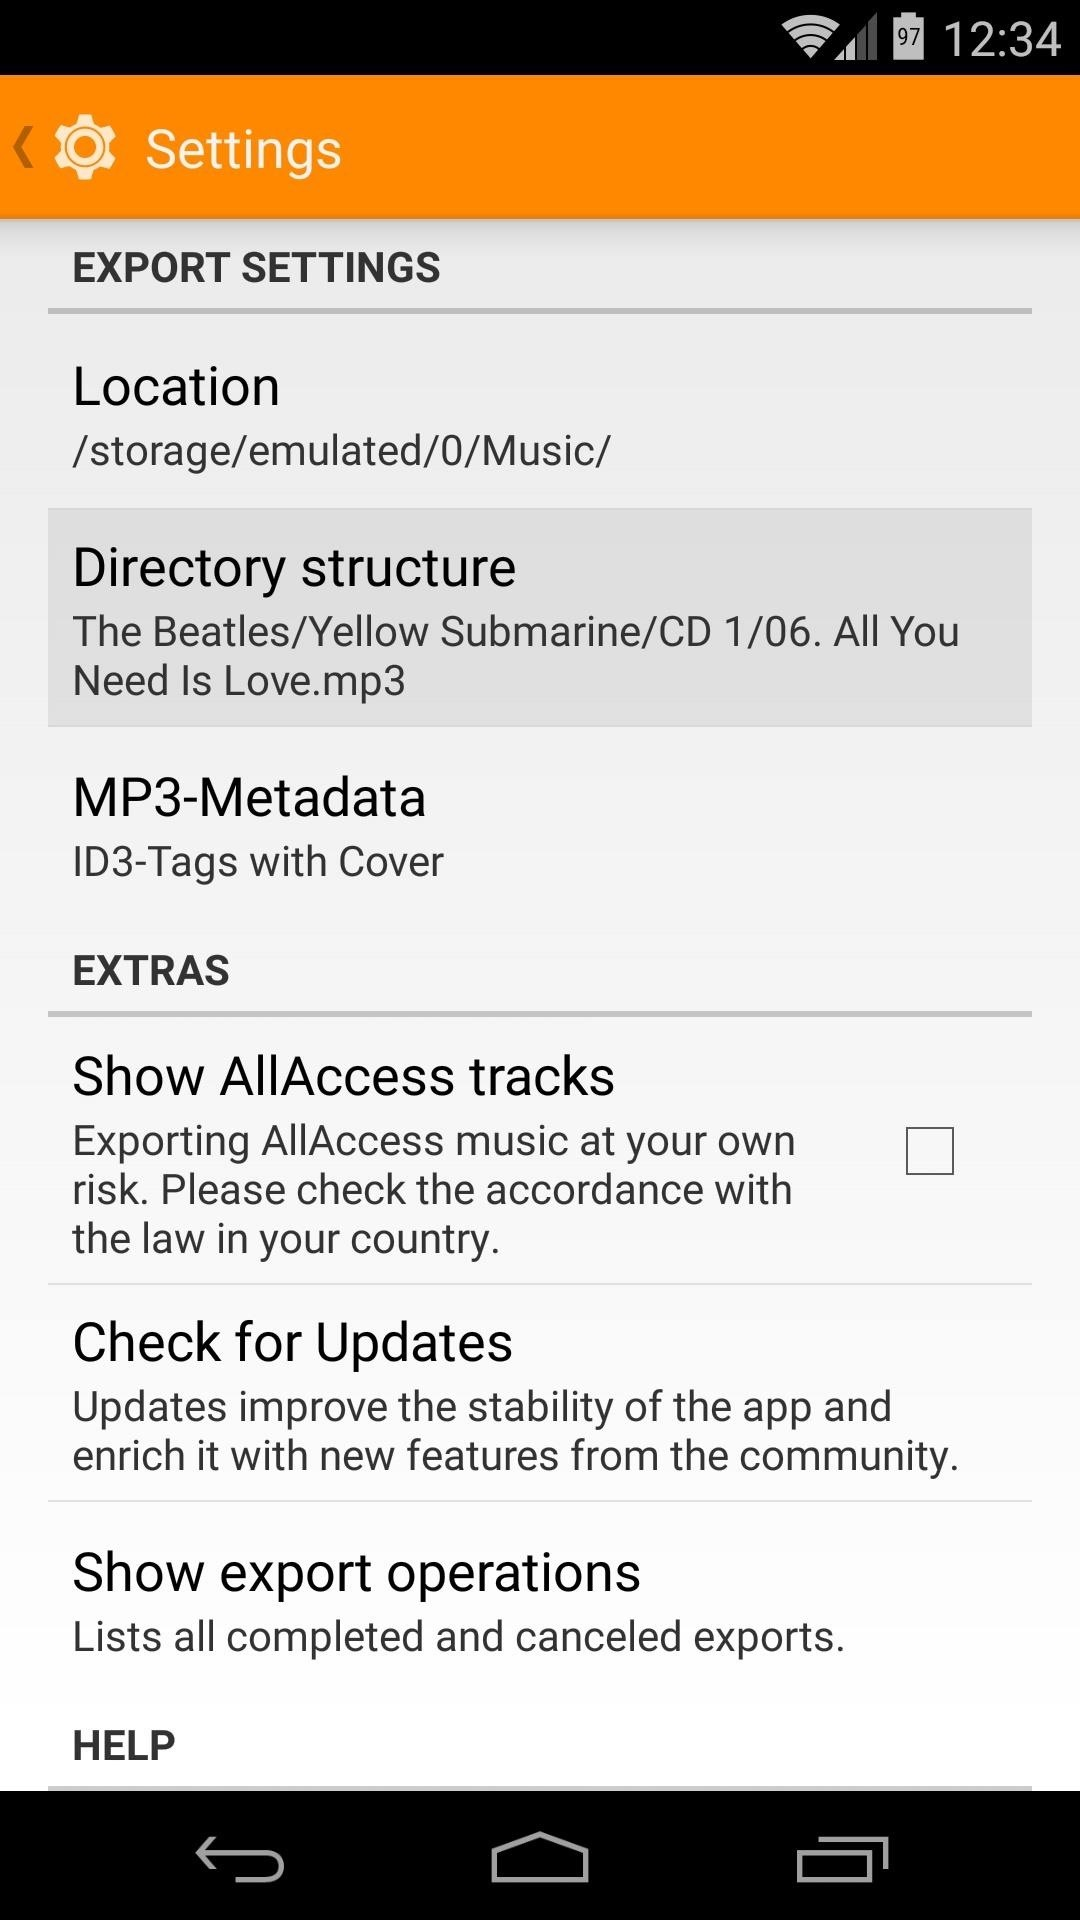 Glomorous Tick Box Next To Show Allaccess Tracks If You Want To Be Able Todownload Songs Played From All Access How To Download Songs From Google Play Music Any Offline Use photos Download All Photos From Google Photos